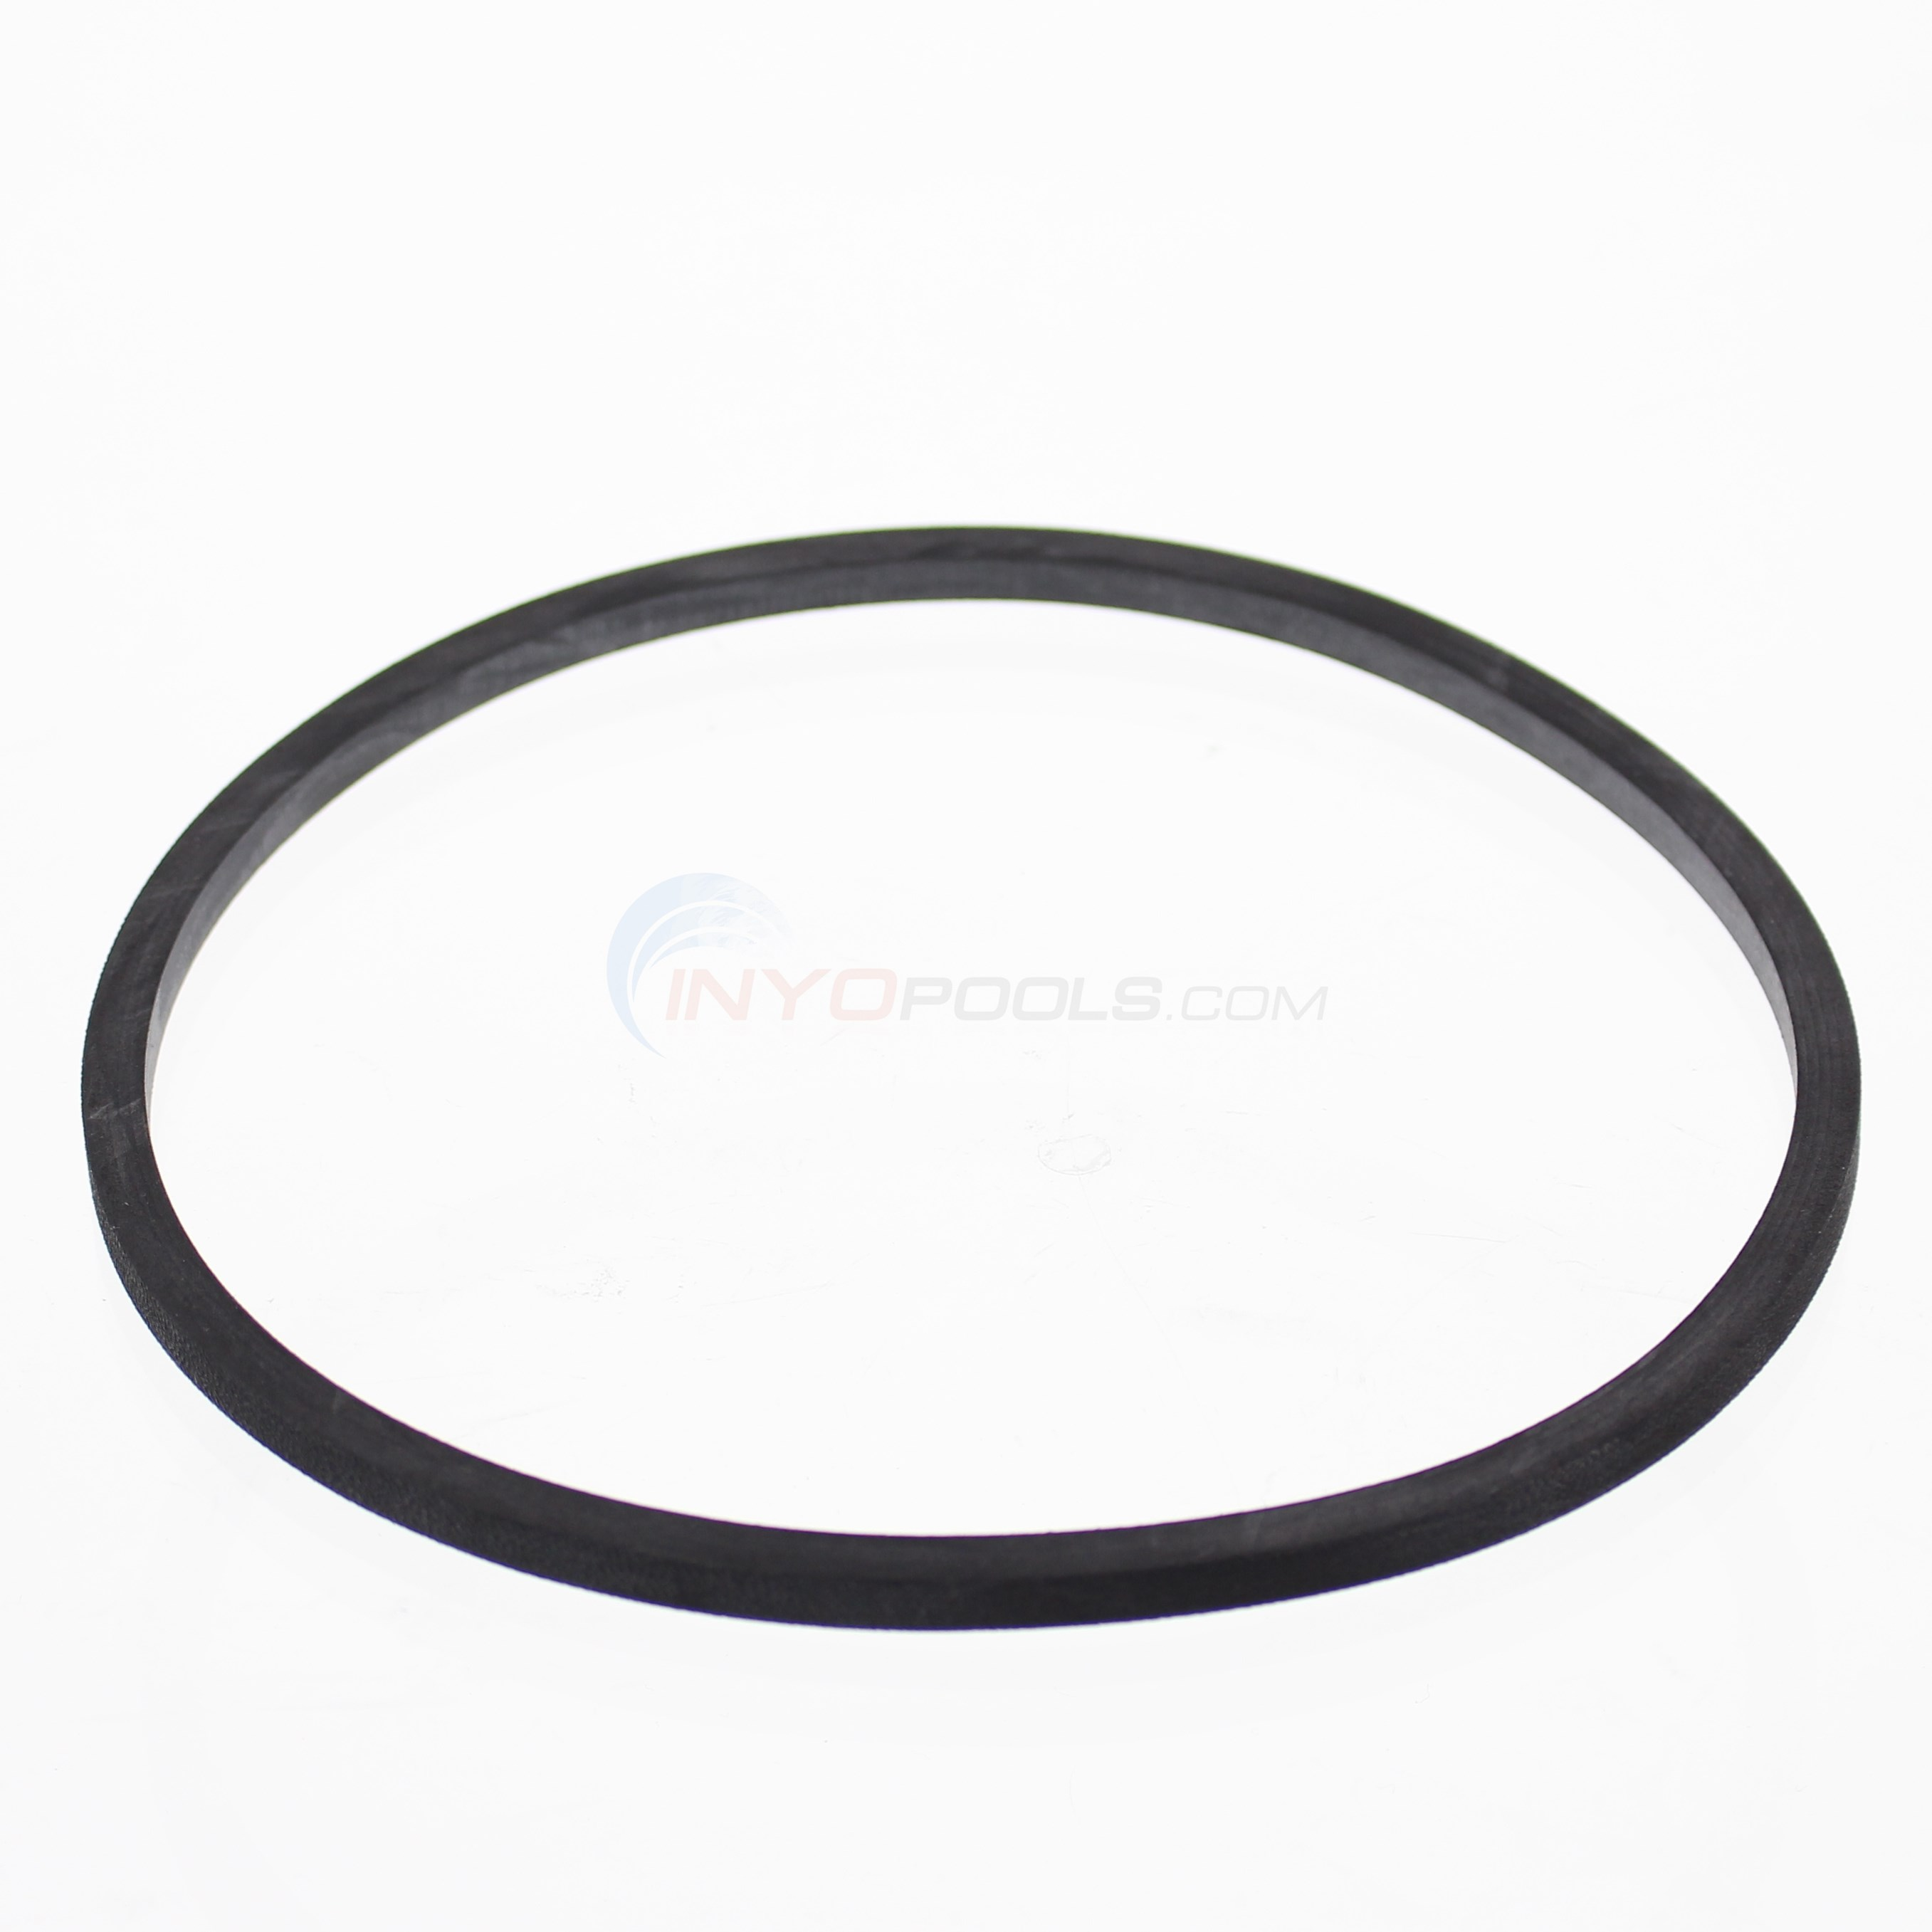 GASKET, FLANGE (SQUARE RING)